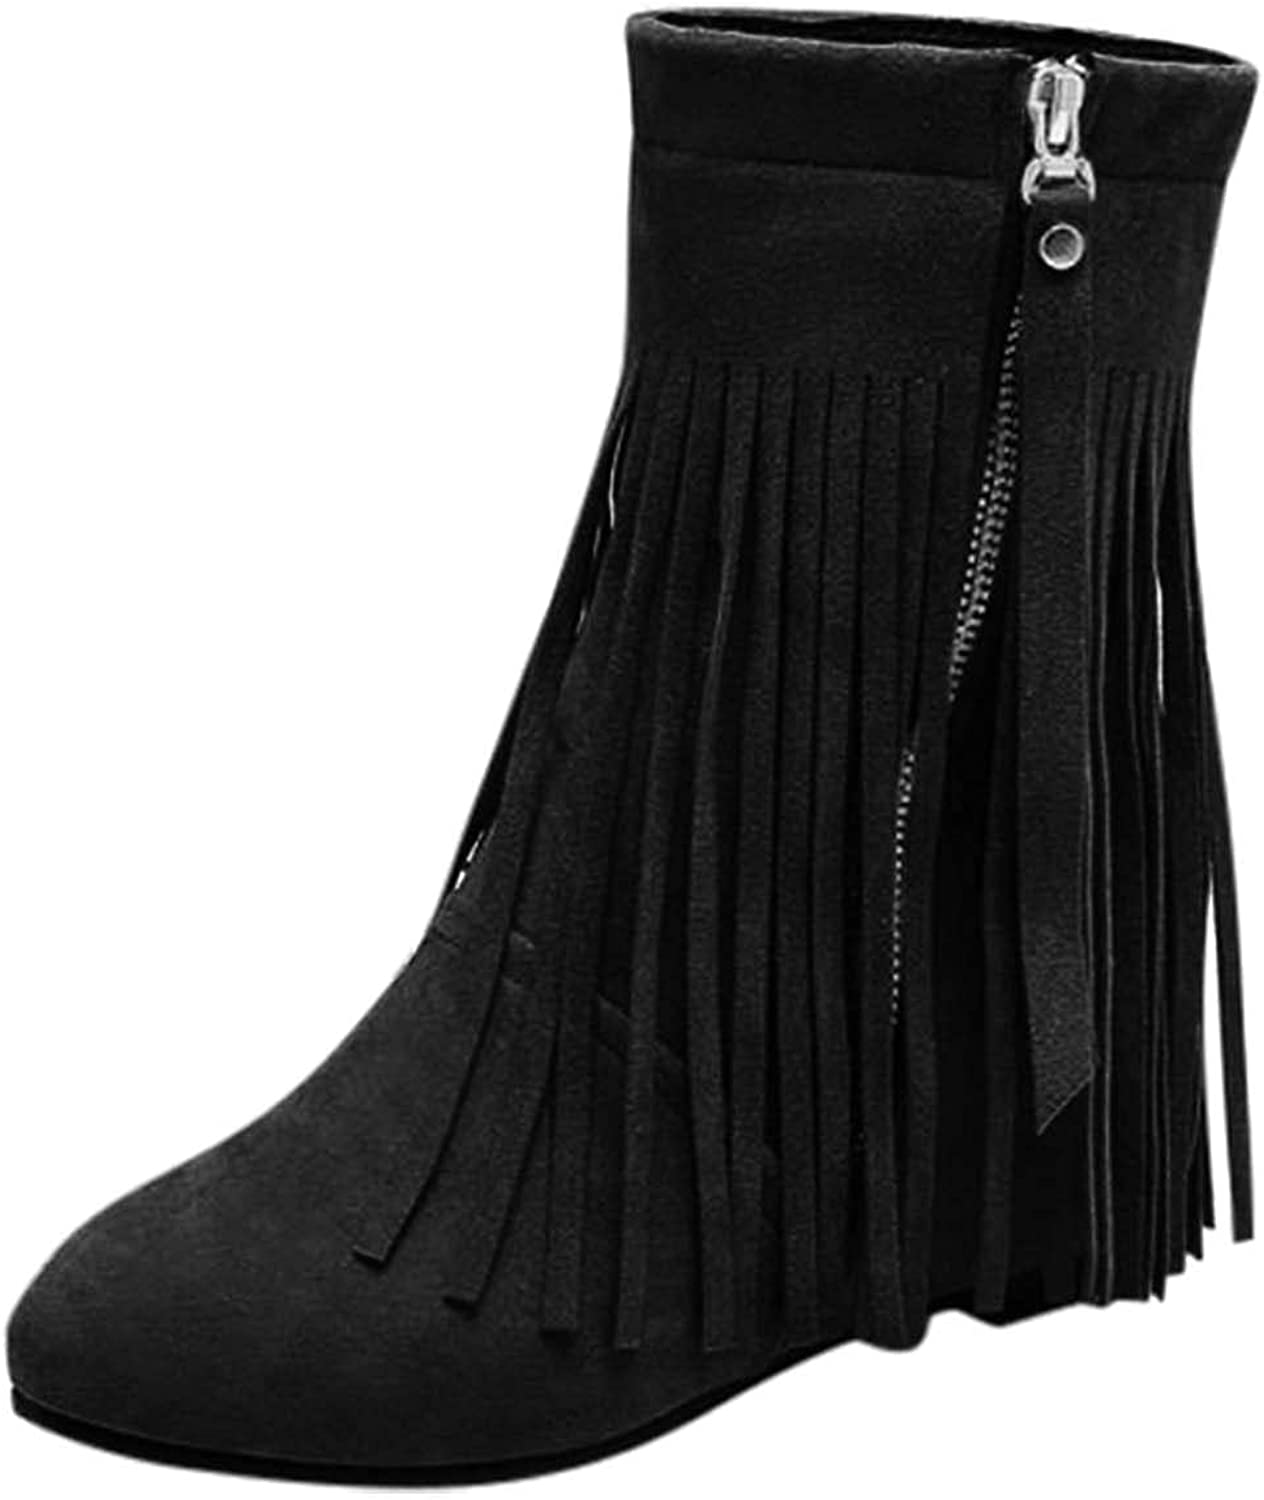 Classic Fringe Mid Women Boots Pull On Flat Winter Shoes Women's